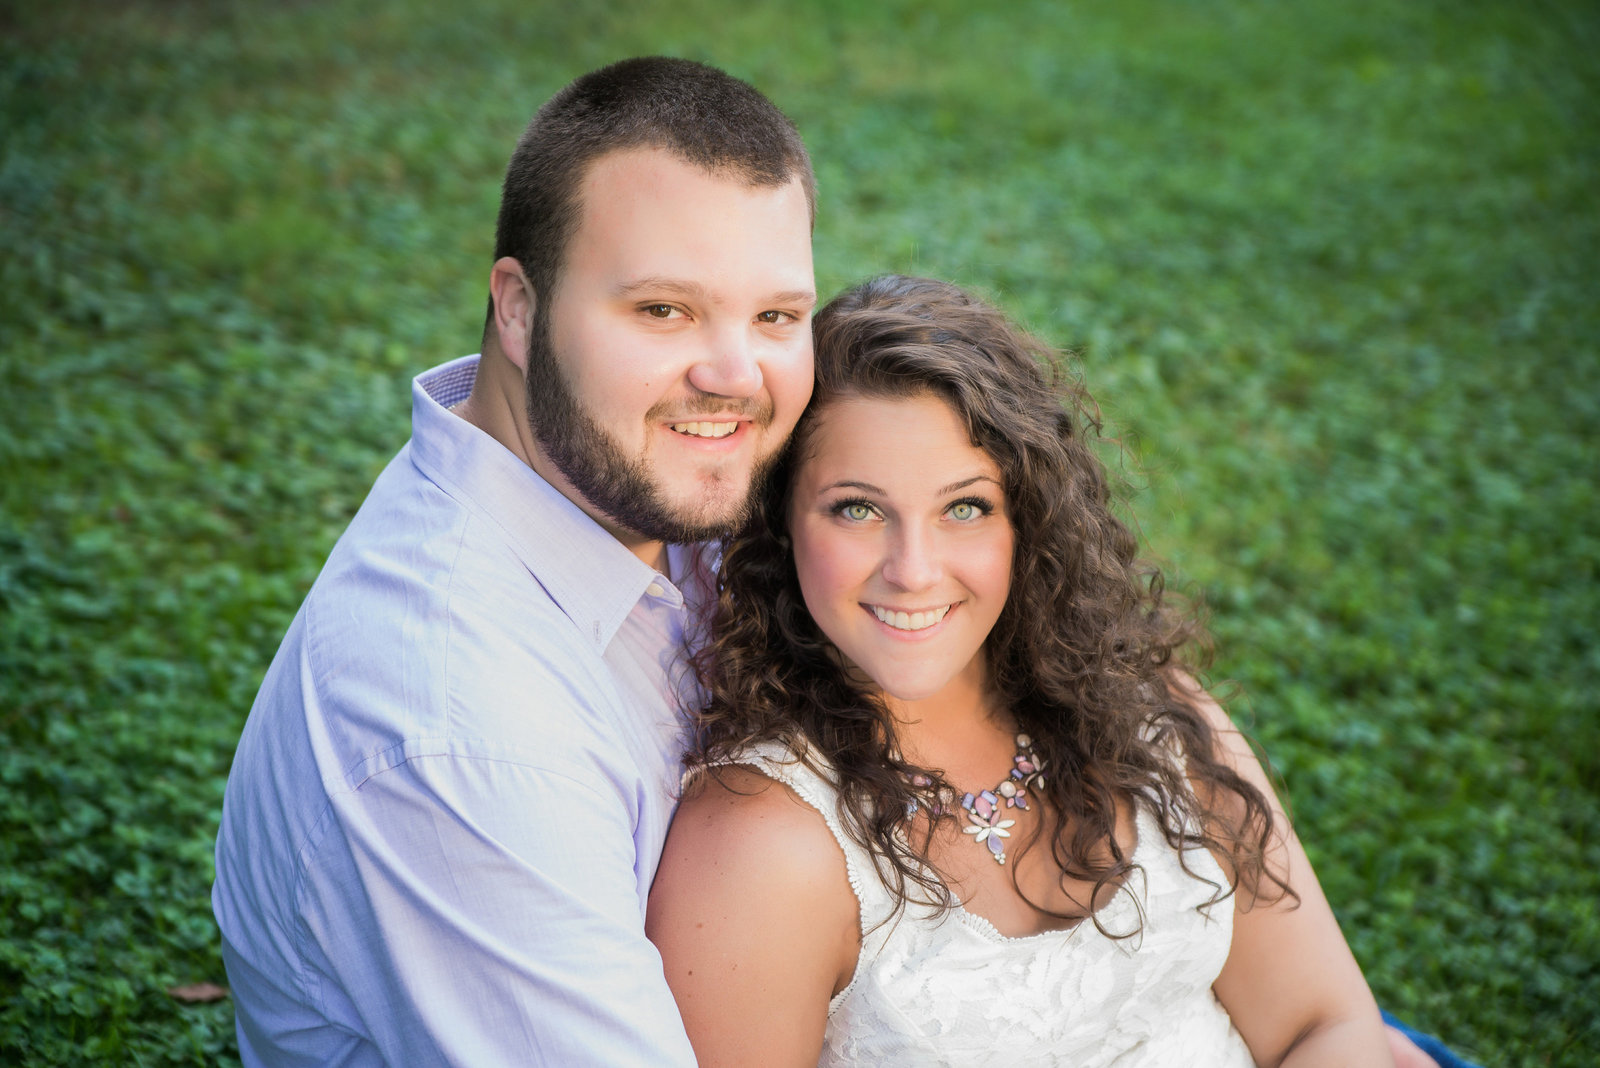 NJ_Rustic_Engagement_Photography011